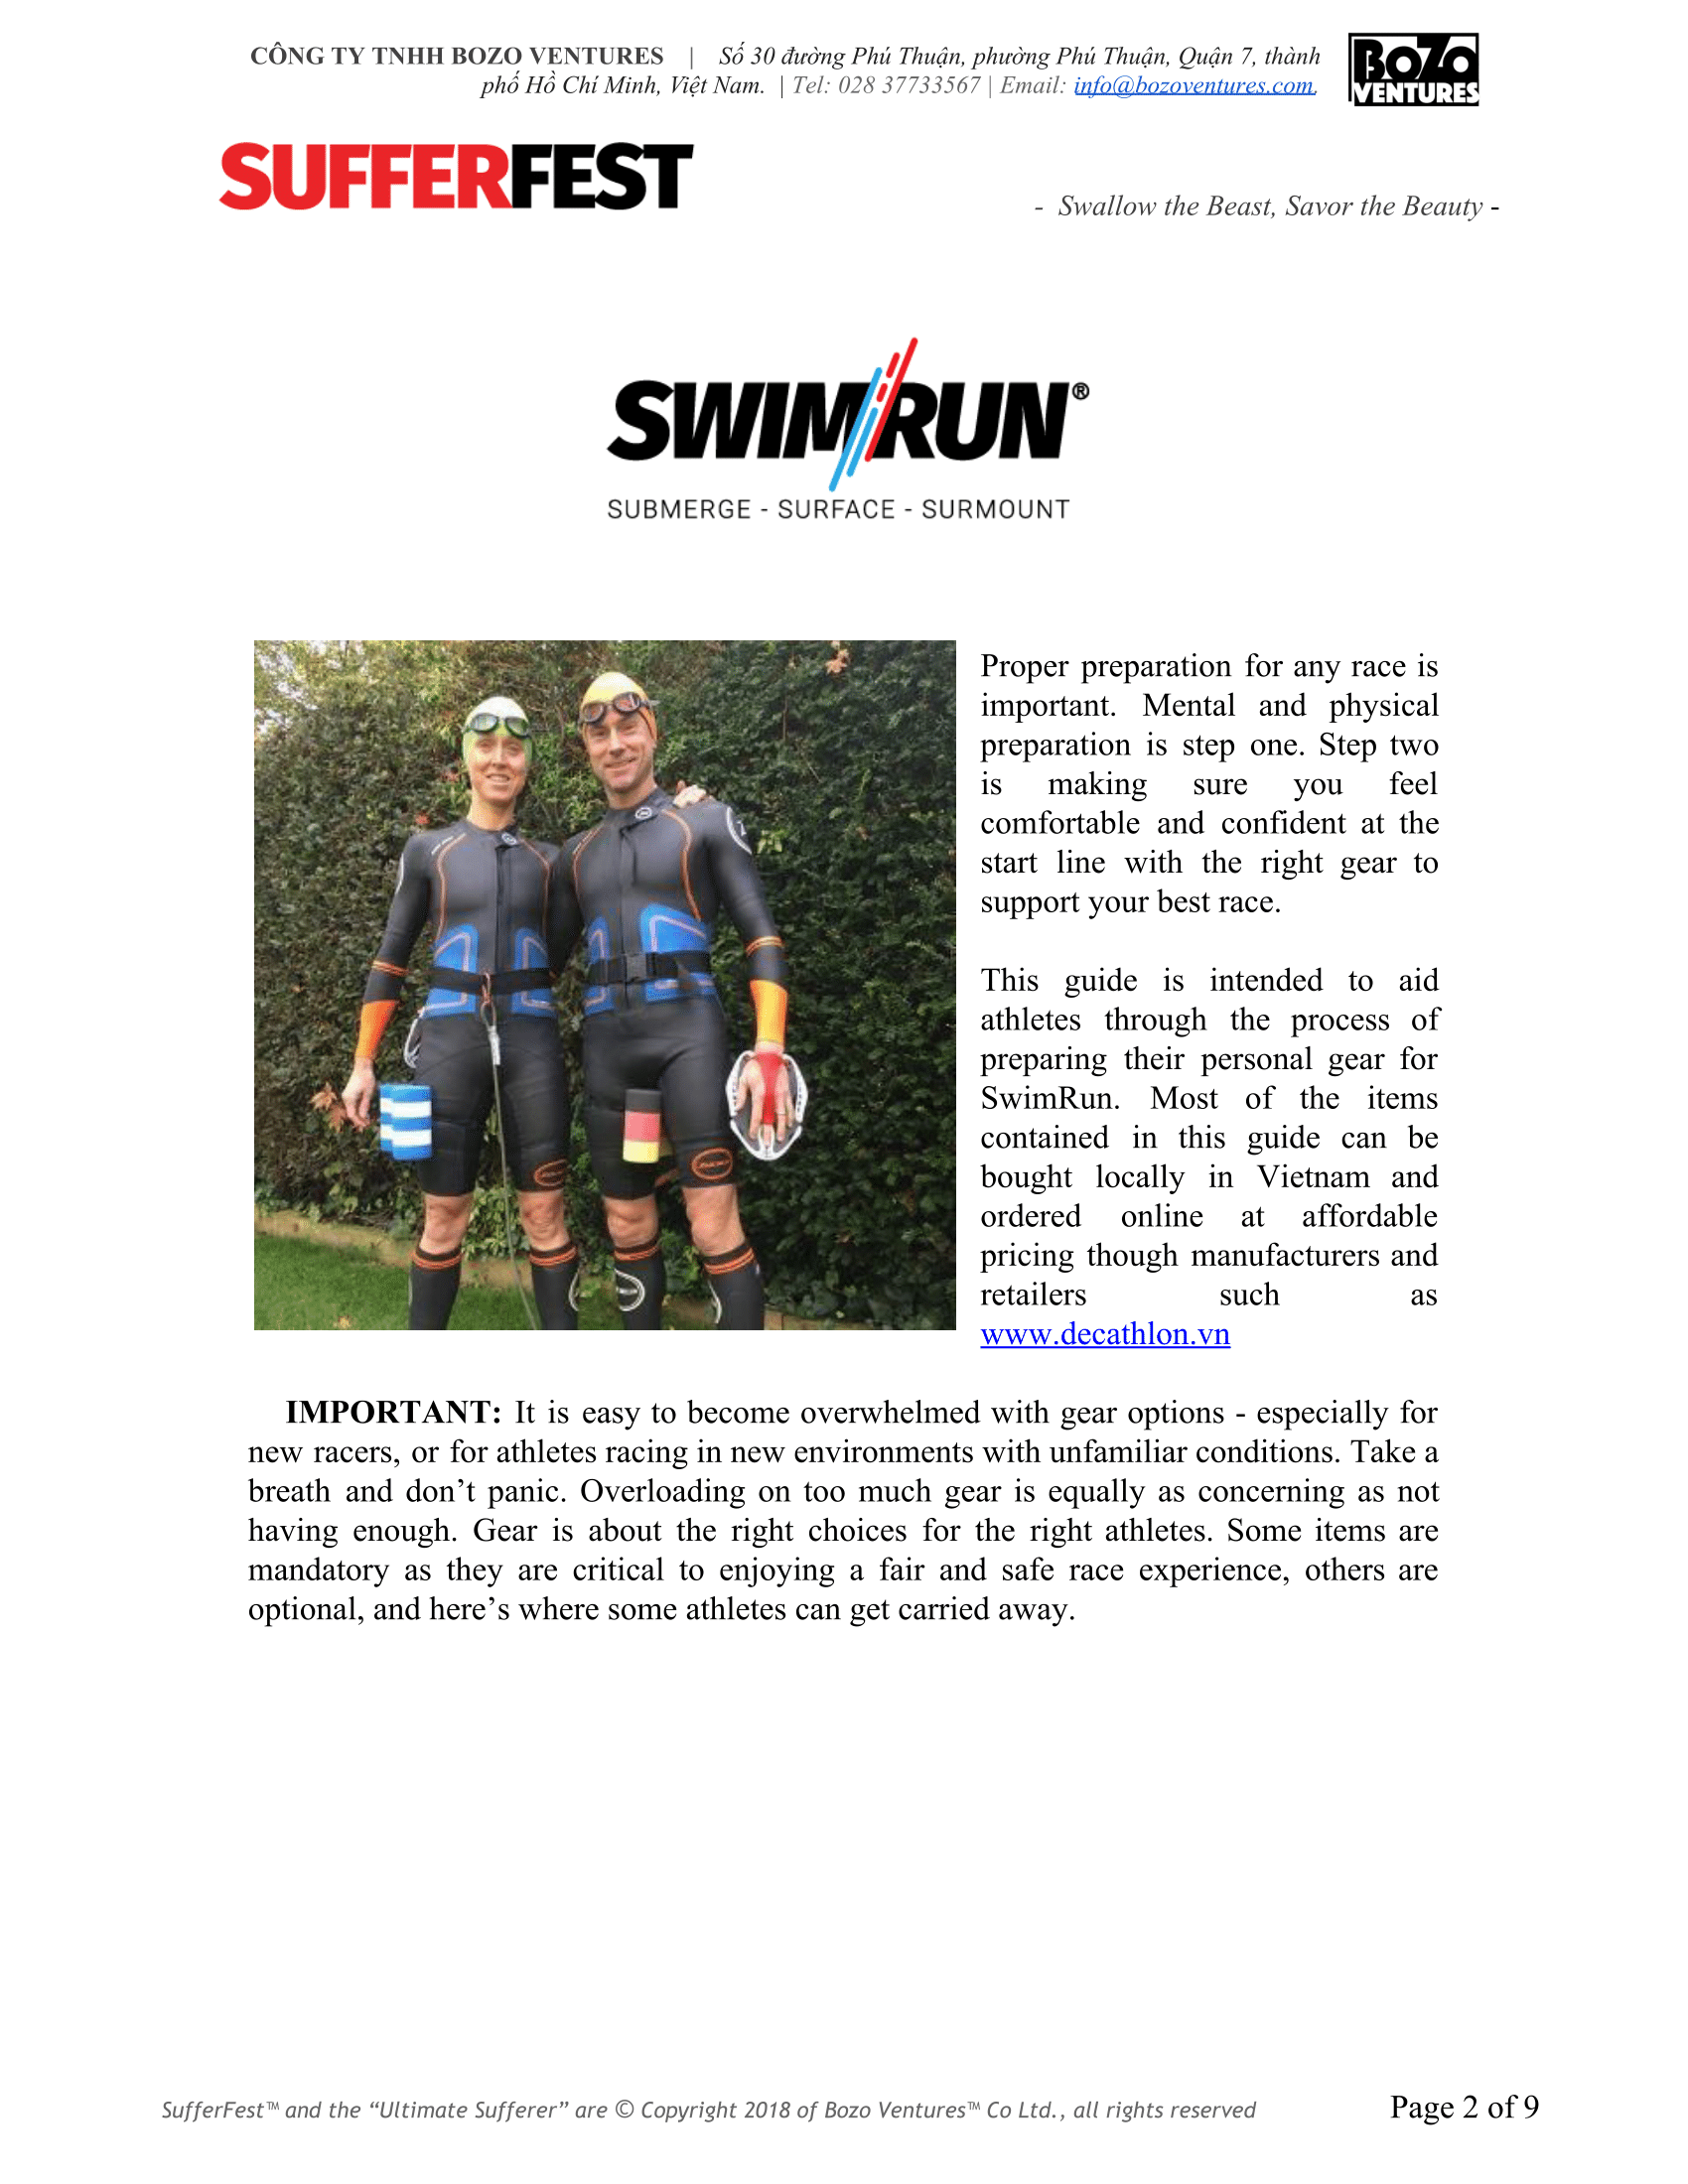 [ENG] SufferFest™ - SwimRun Gear Guide -2.png